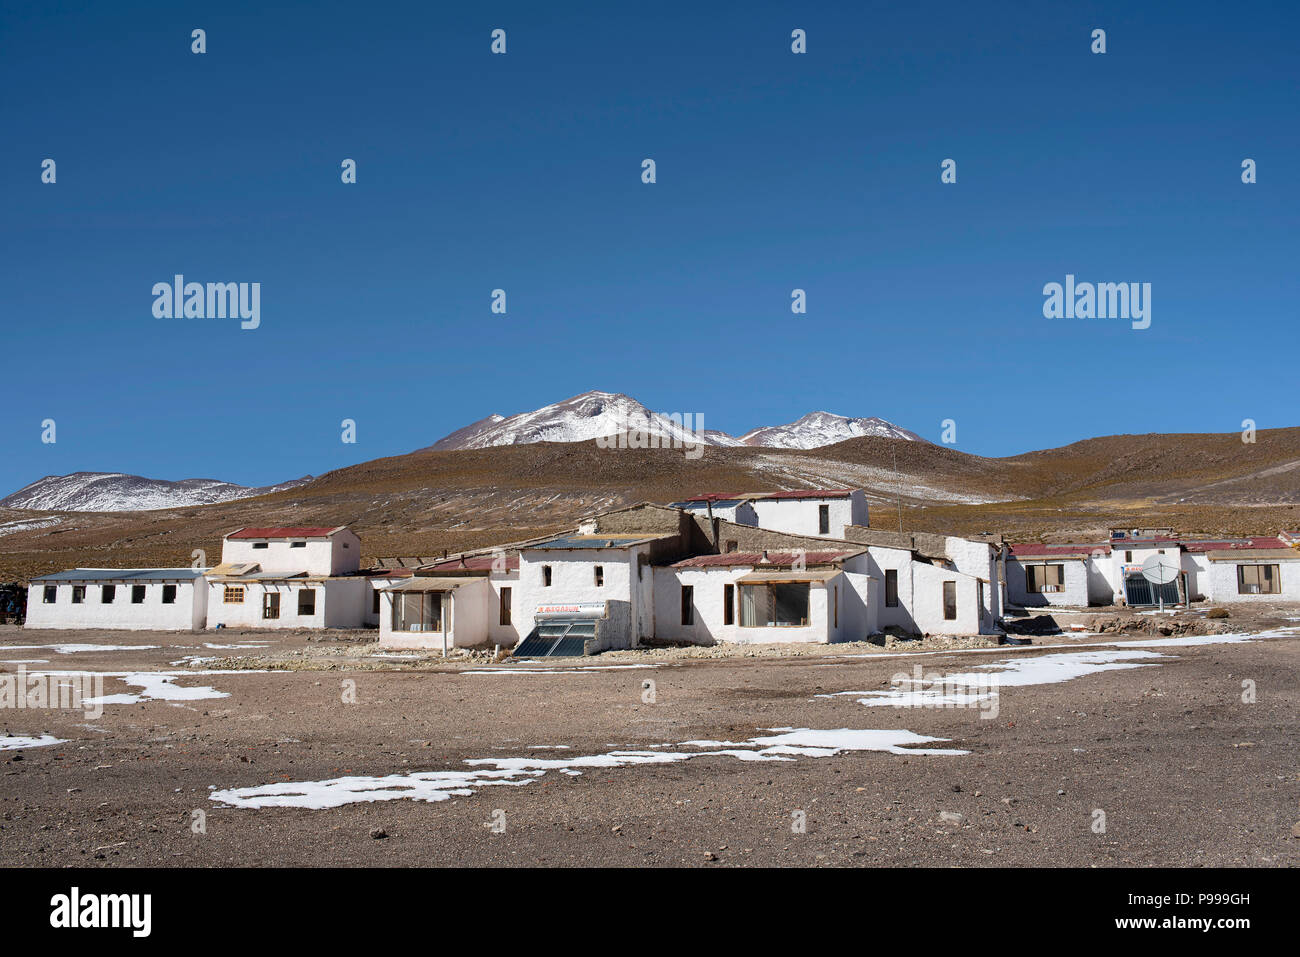 The wintery landscape of Laguna Cañapa (Cañapa salt lake) and its small group of white houses. Potosí Department, Bolivia. - Stock Image